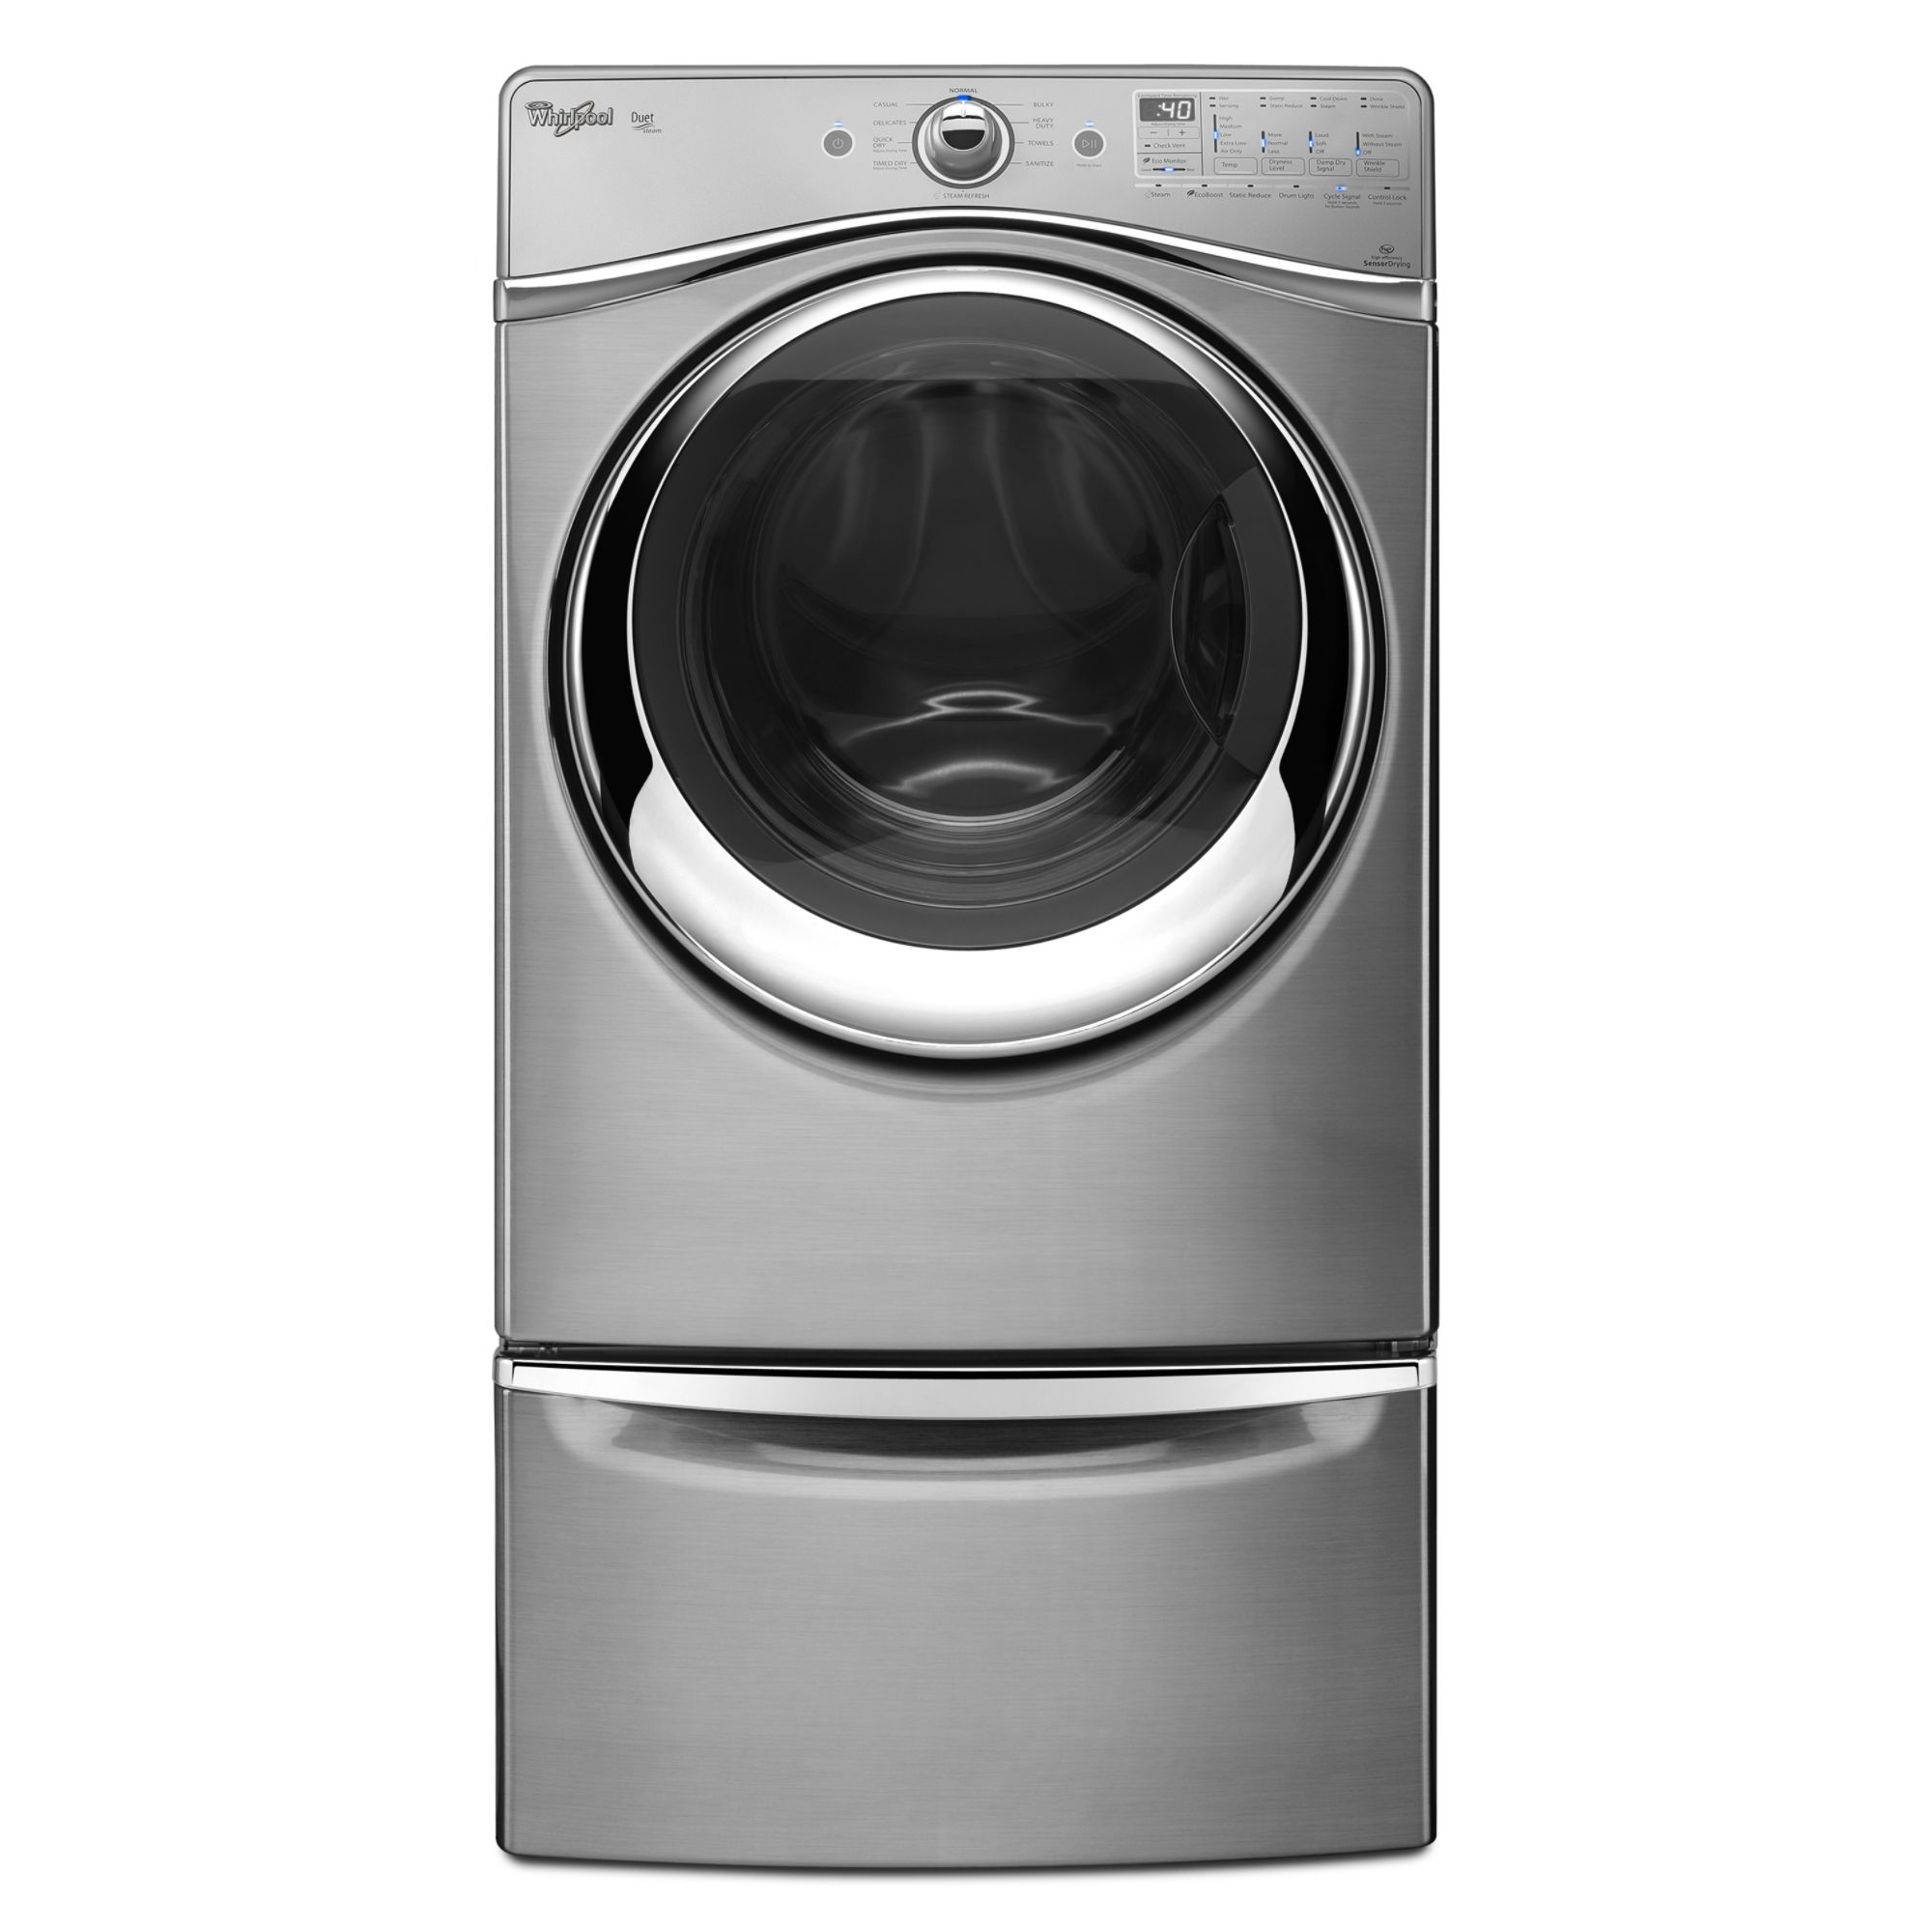 Whirlpool Duet® 7.4 cu. ft. Gas Dryer w/ Tap Touch Controls - Diamond Steel